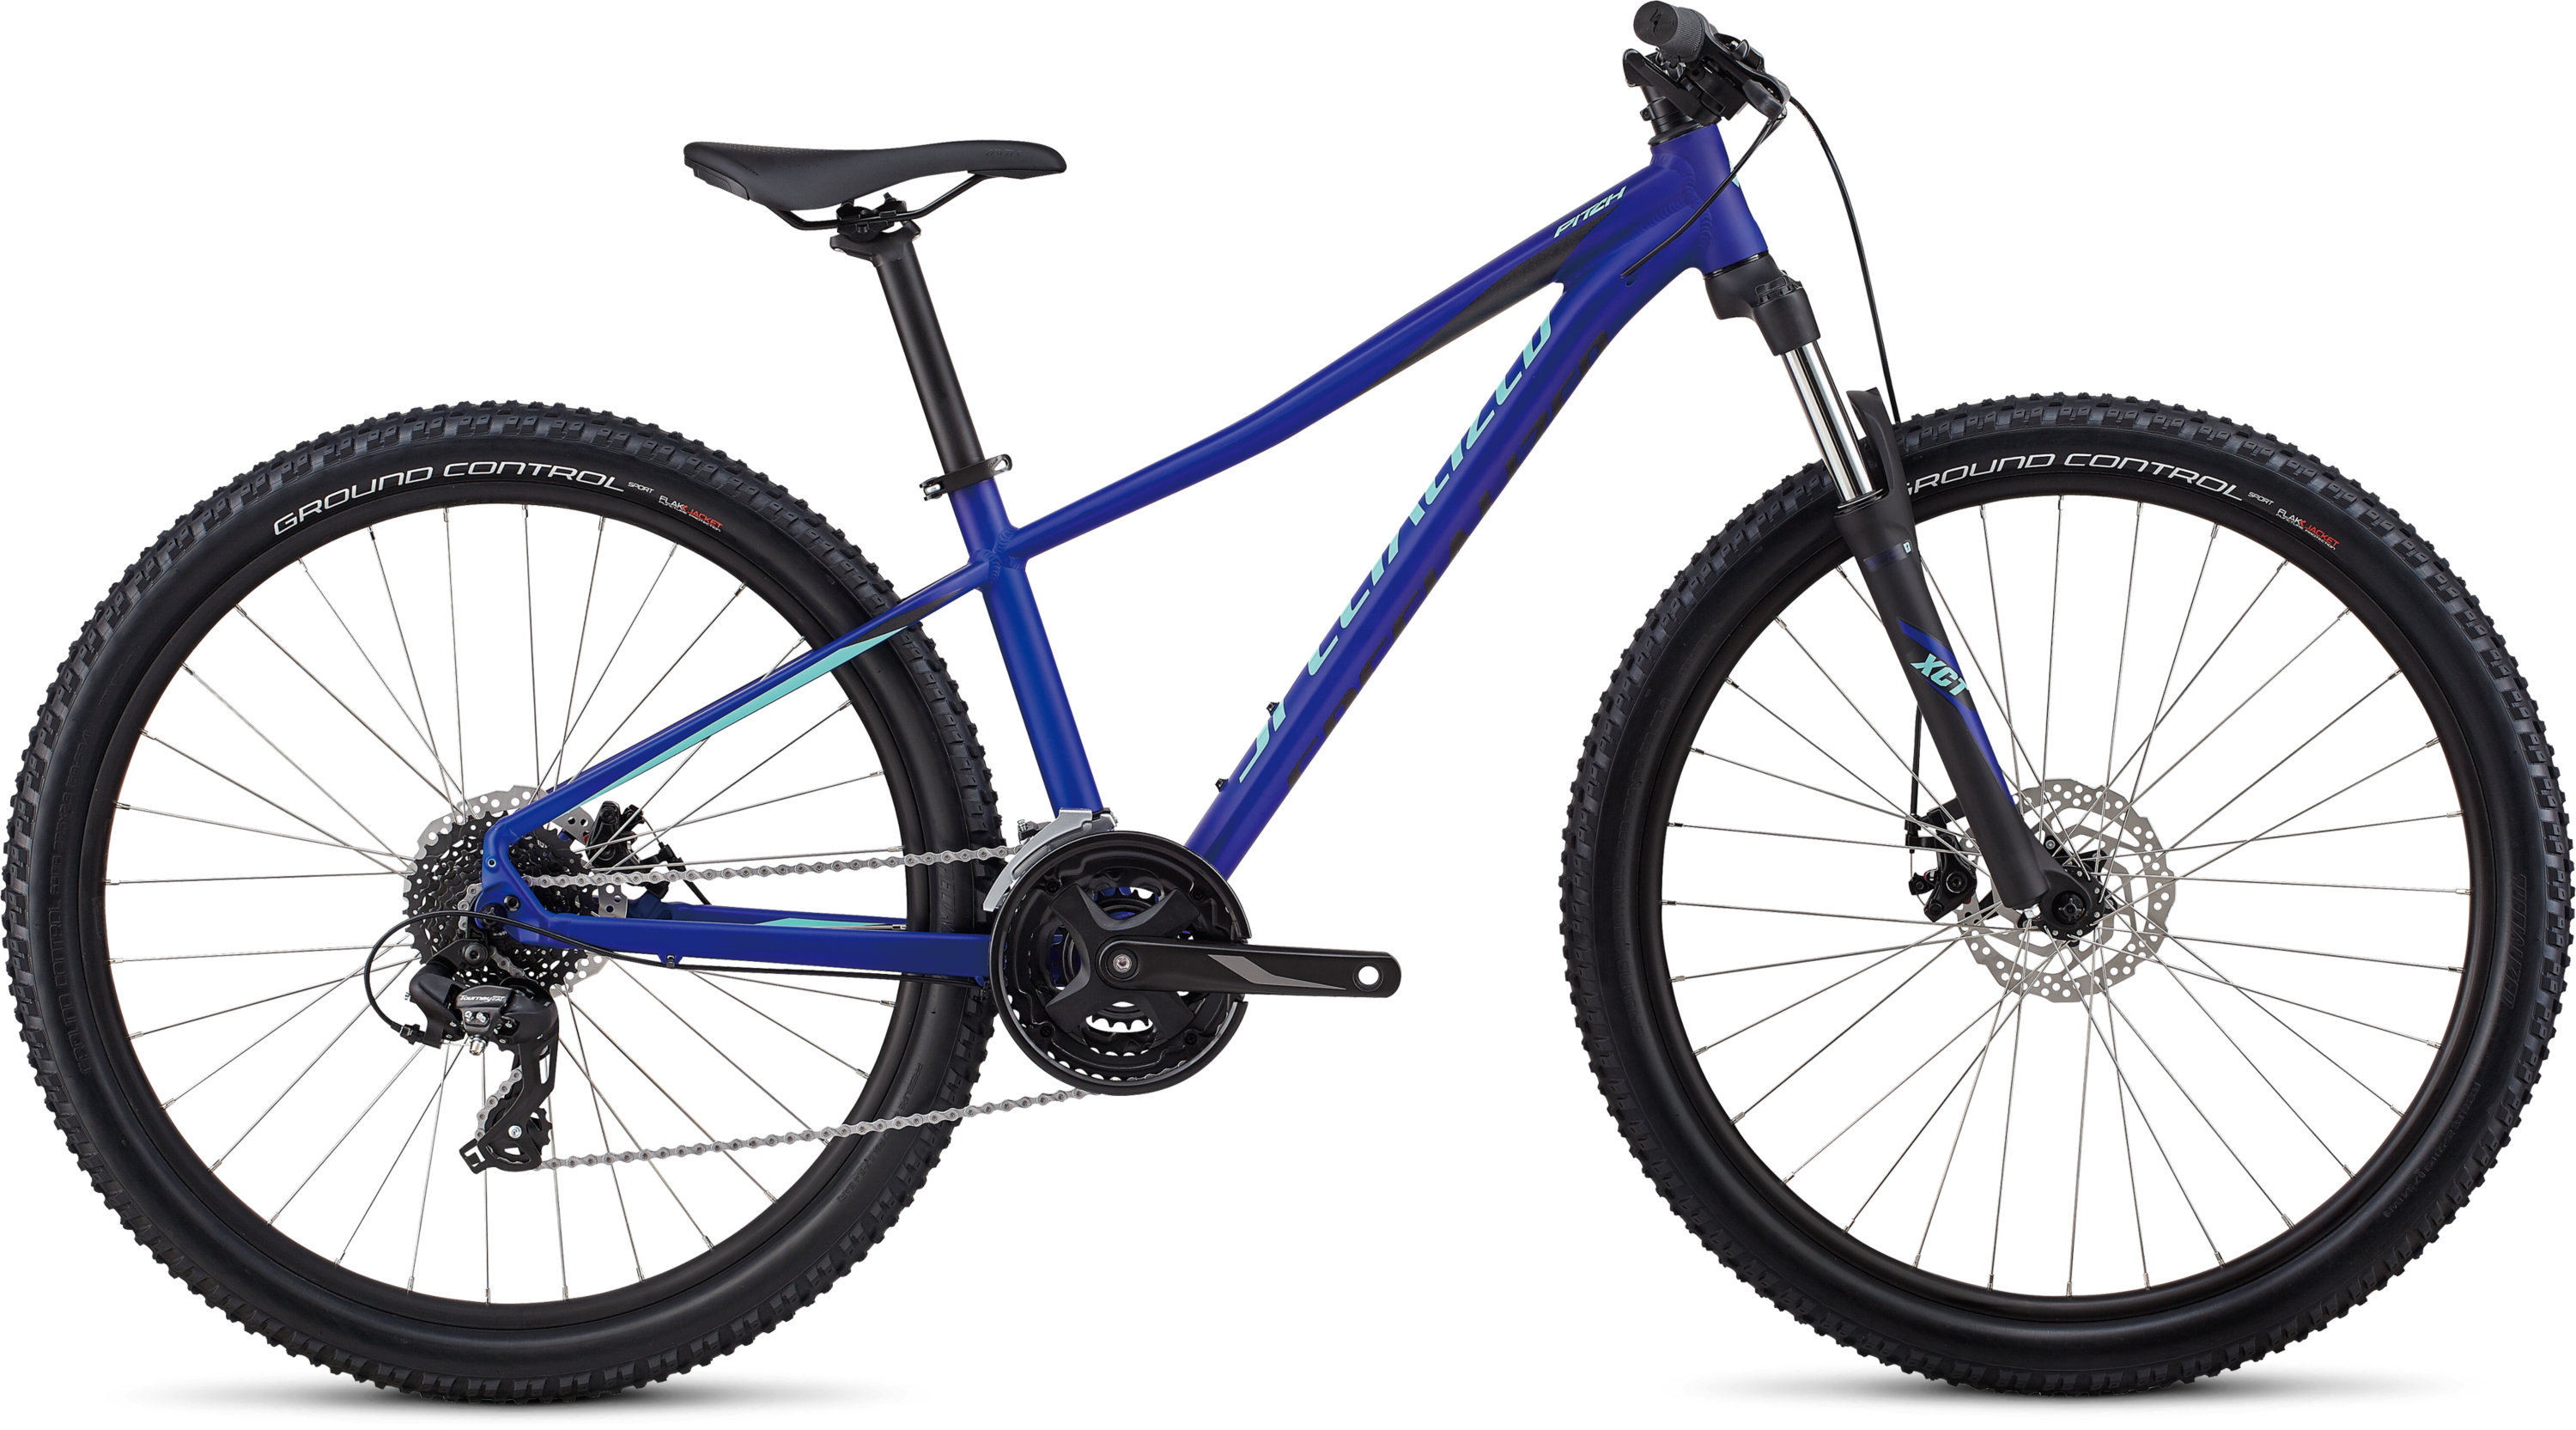 Specialized Women´s Pitch 27.5 Satin / Gloss / Acid Blue / Light Turq/Reflect L - Specialized Women´s Pitch 27.5 Satin / Gloss / Acid Blue / Light Turq/Reflect L